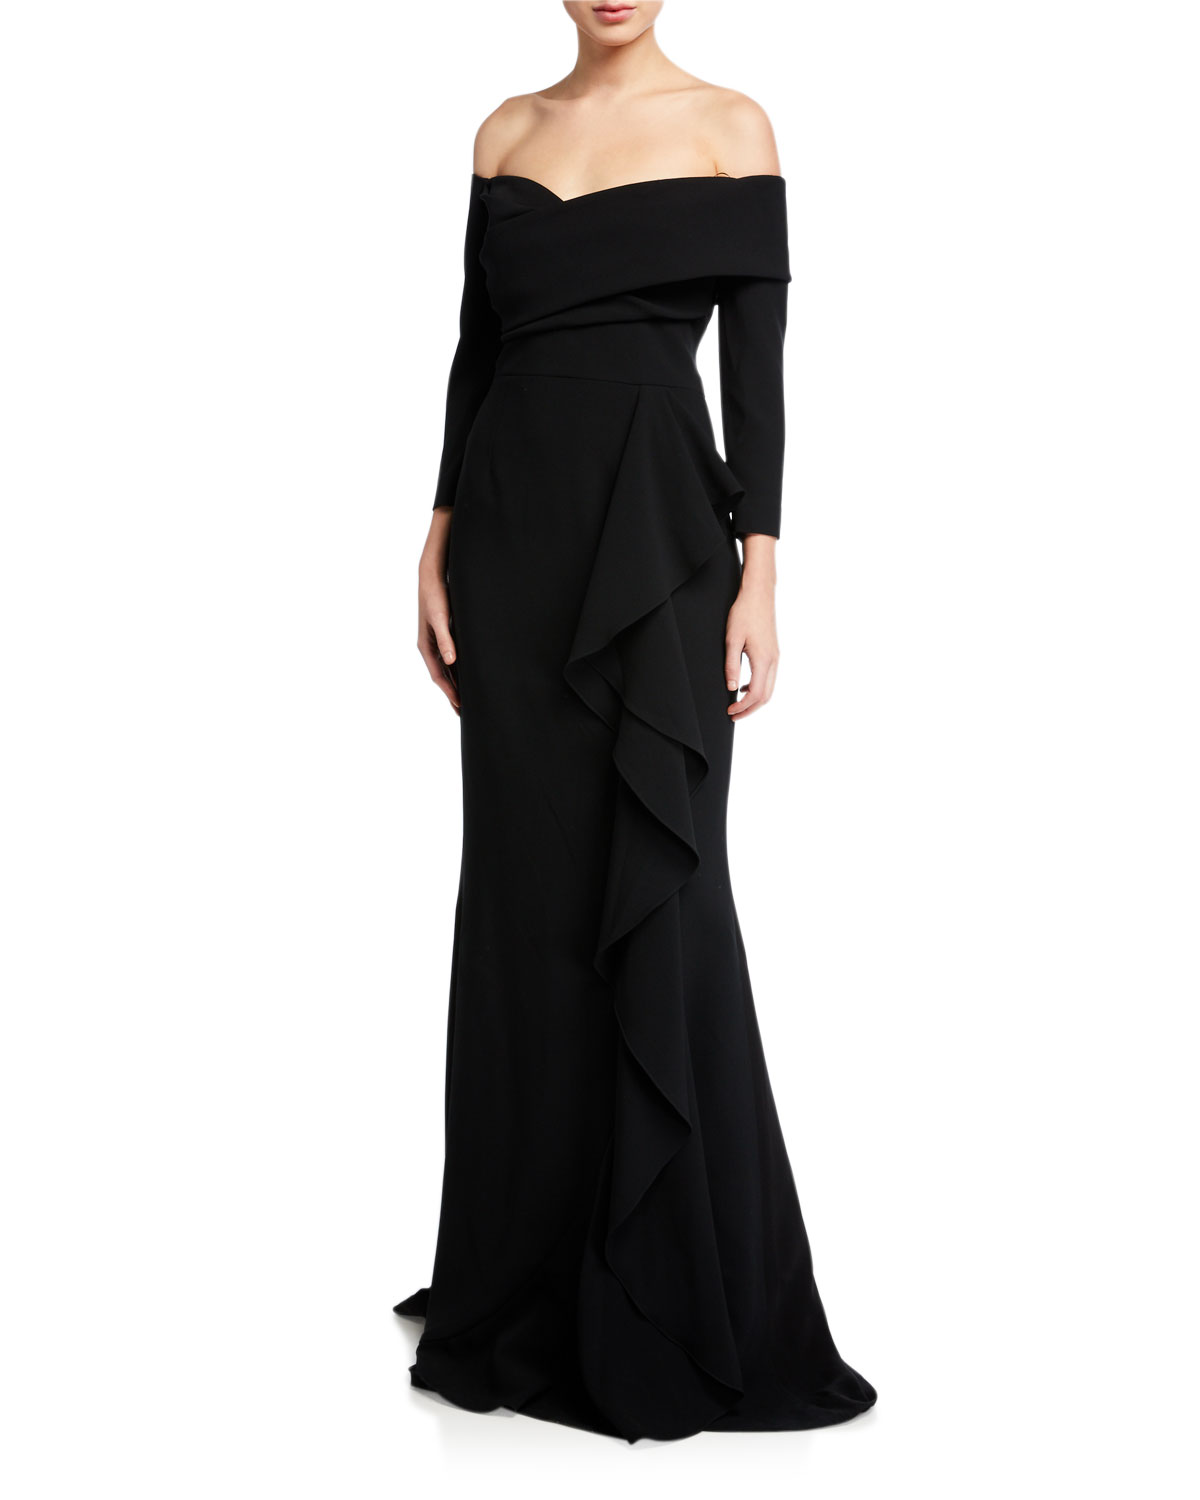 Off The Shoulder 3/4 Sleeve Side Draped Crepe Gown by Rickie Freeman For Teri Jon